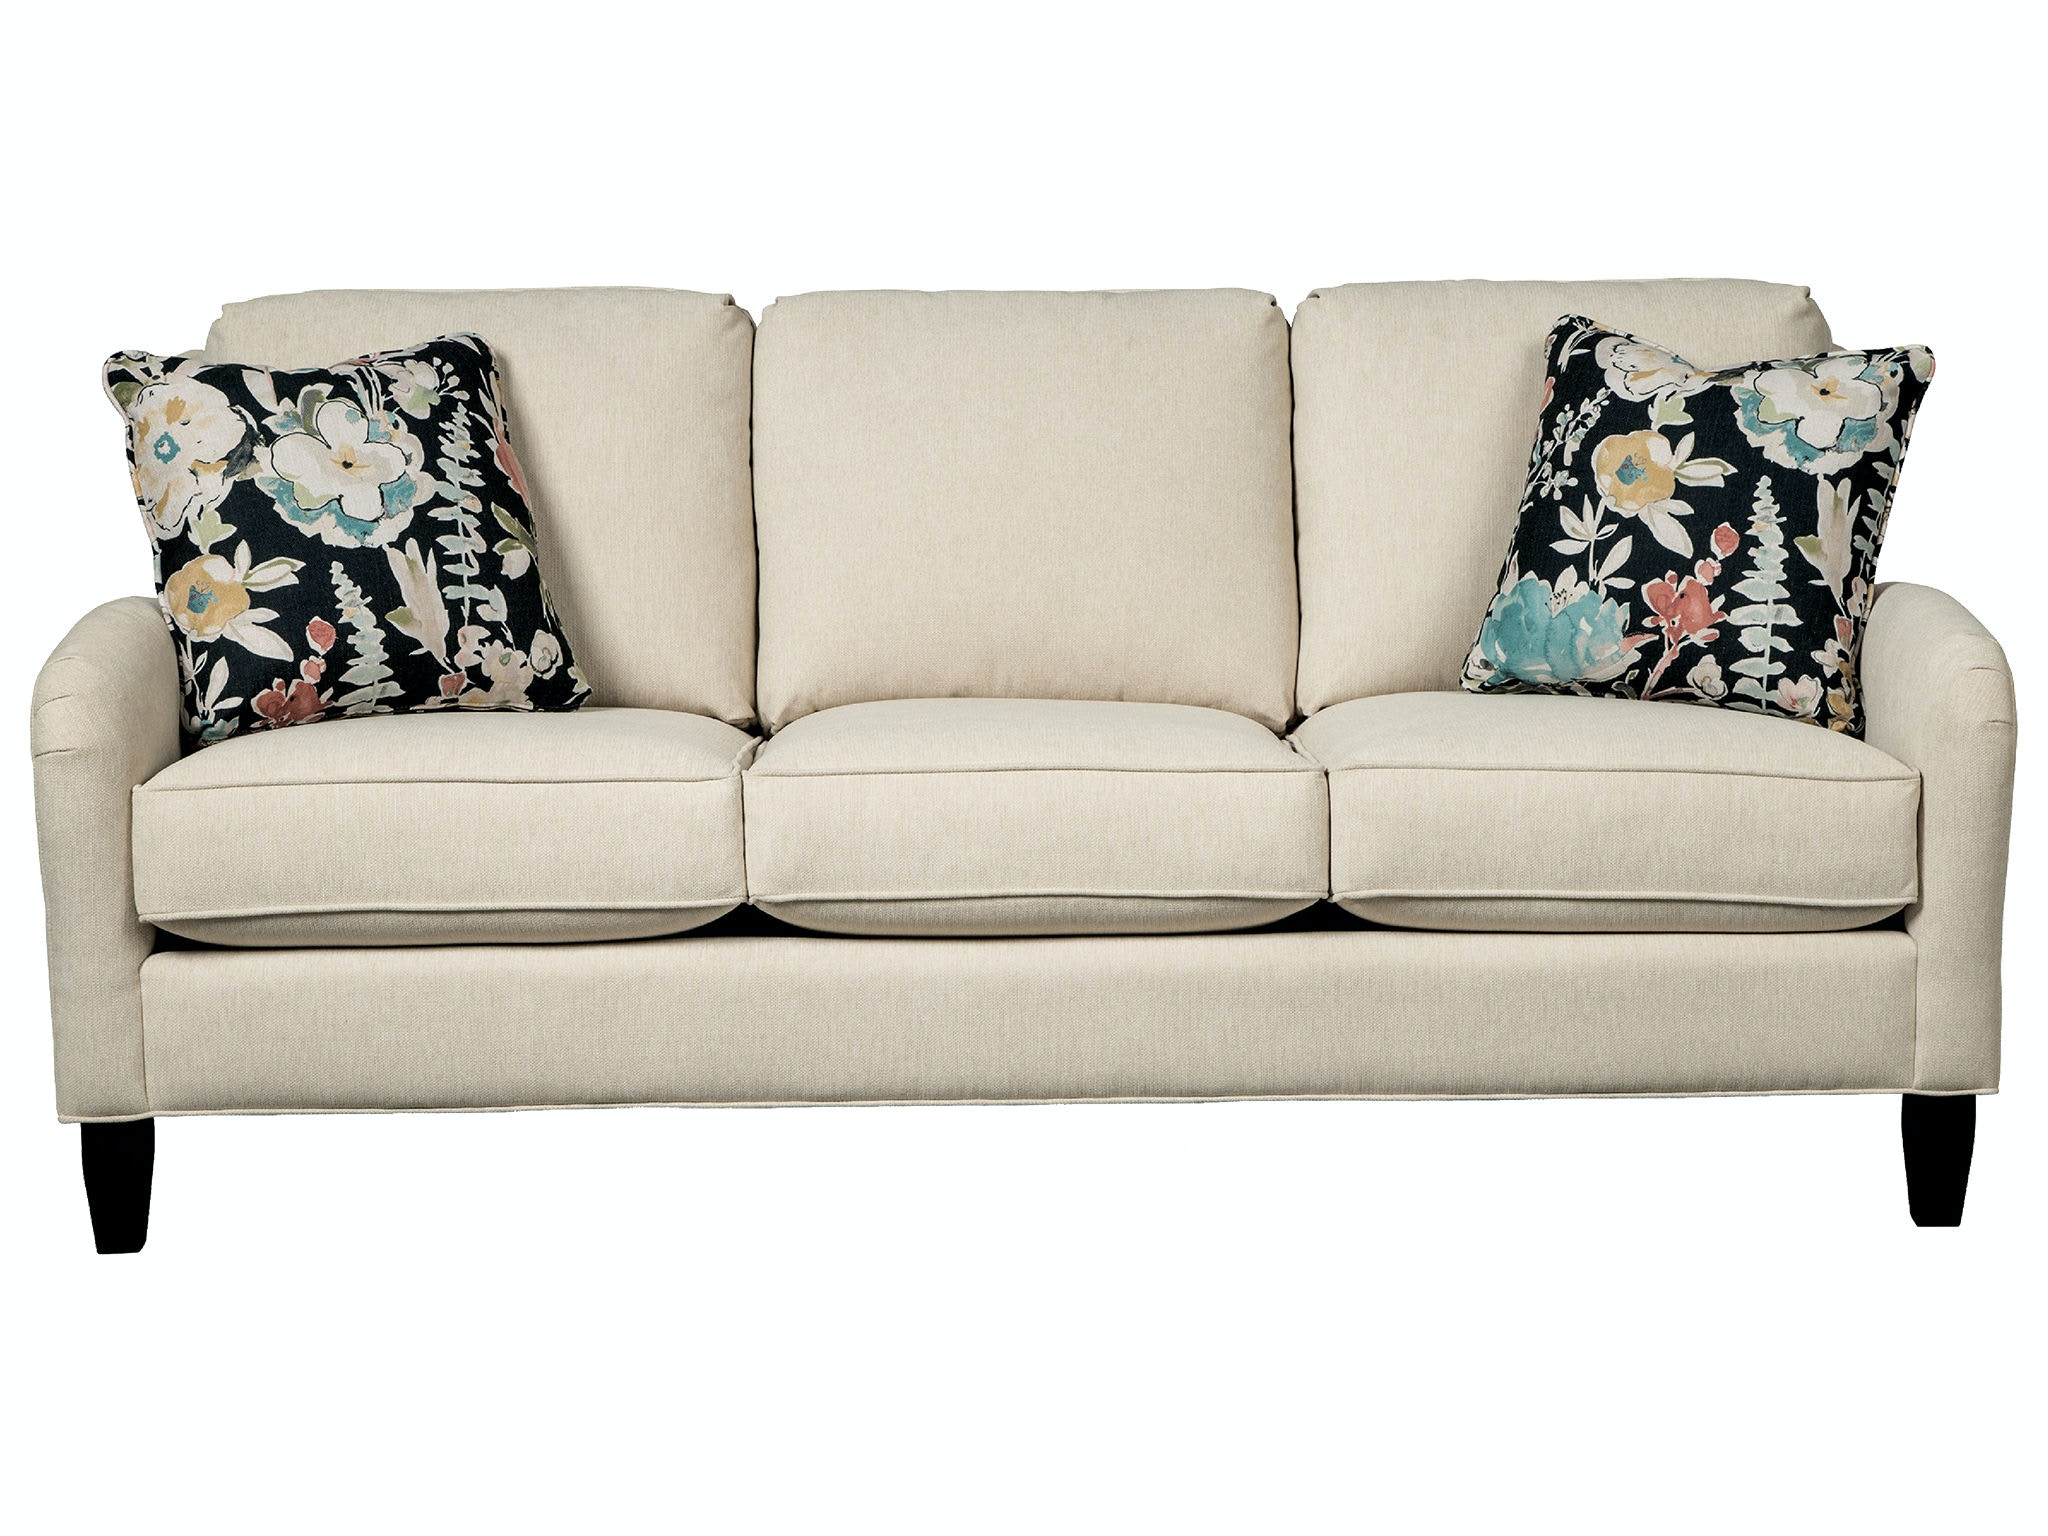 Hickory Craft Sofa 777250